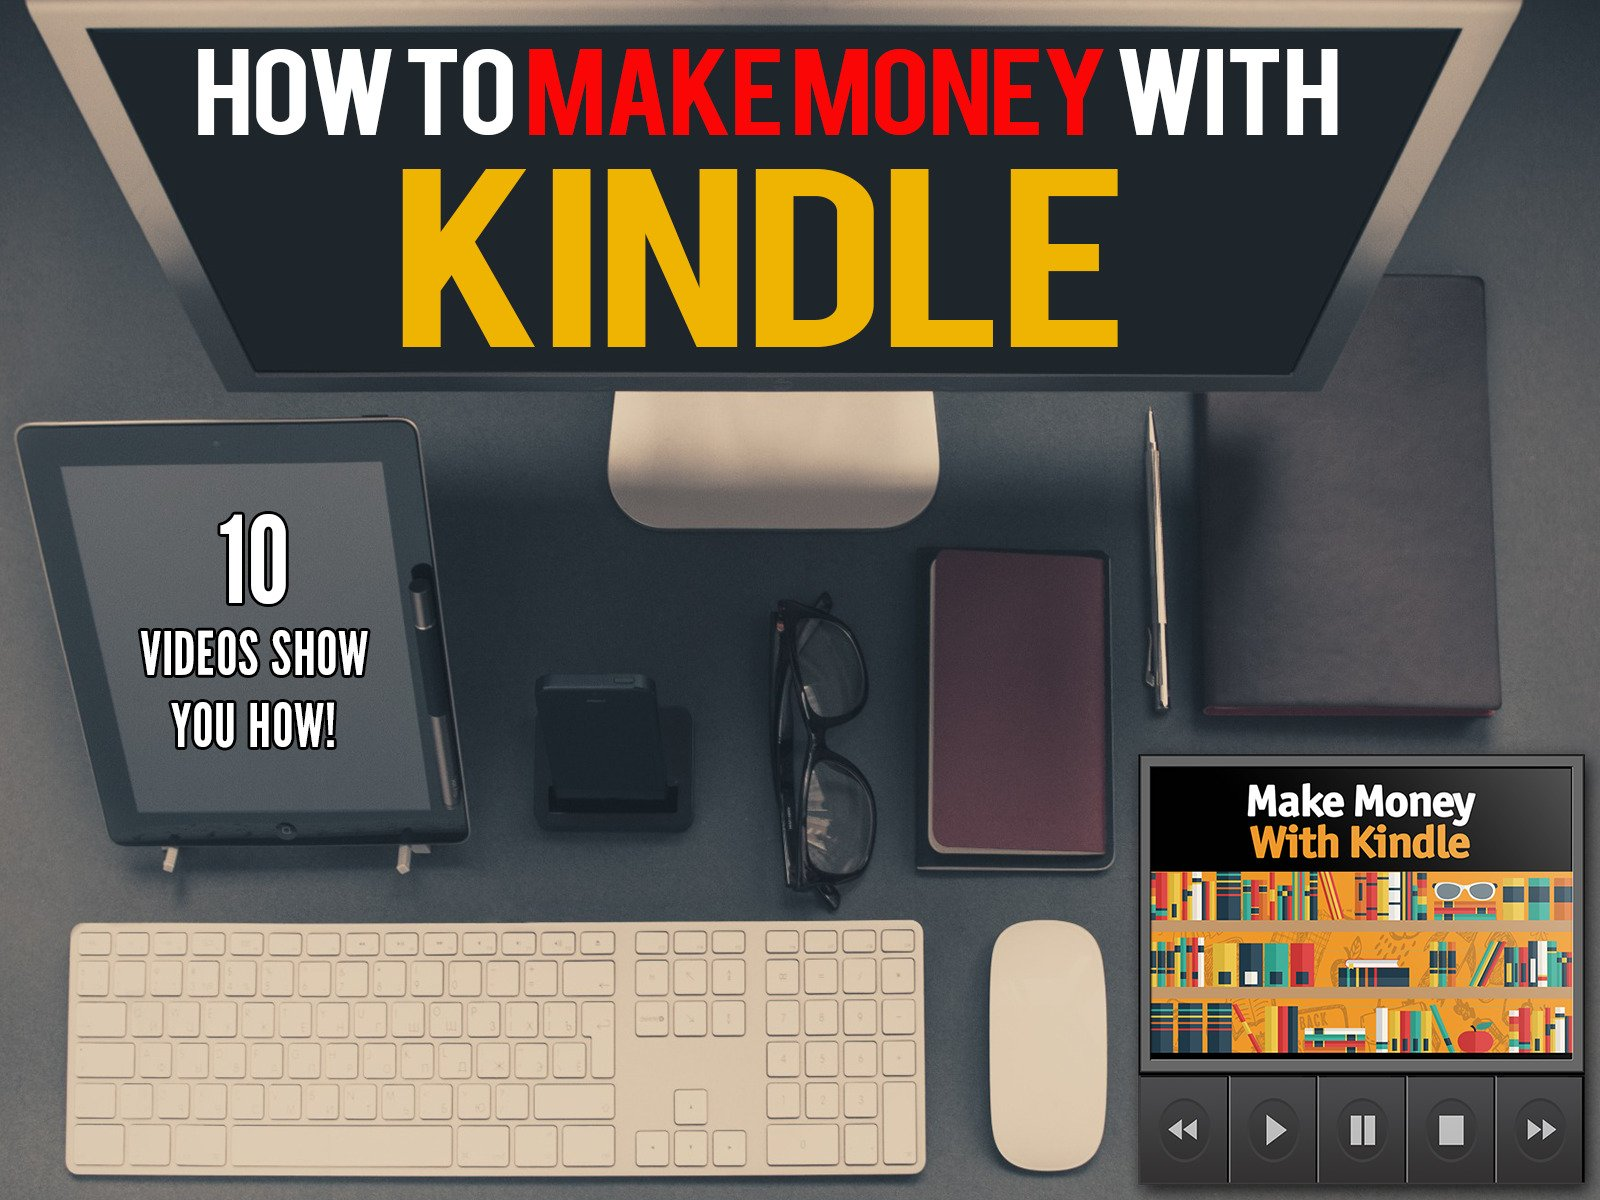 Make money with kindle - Season 1